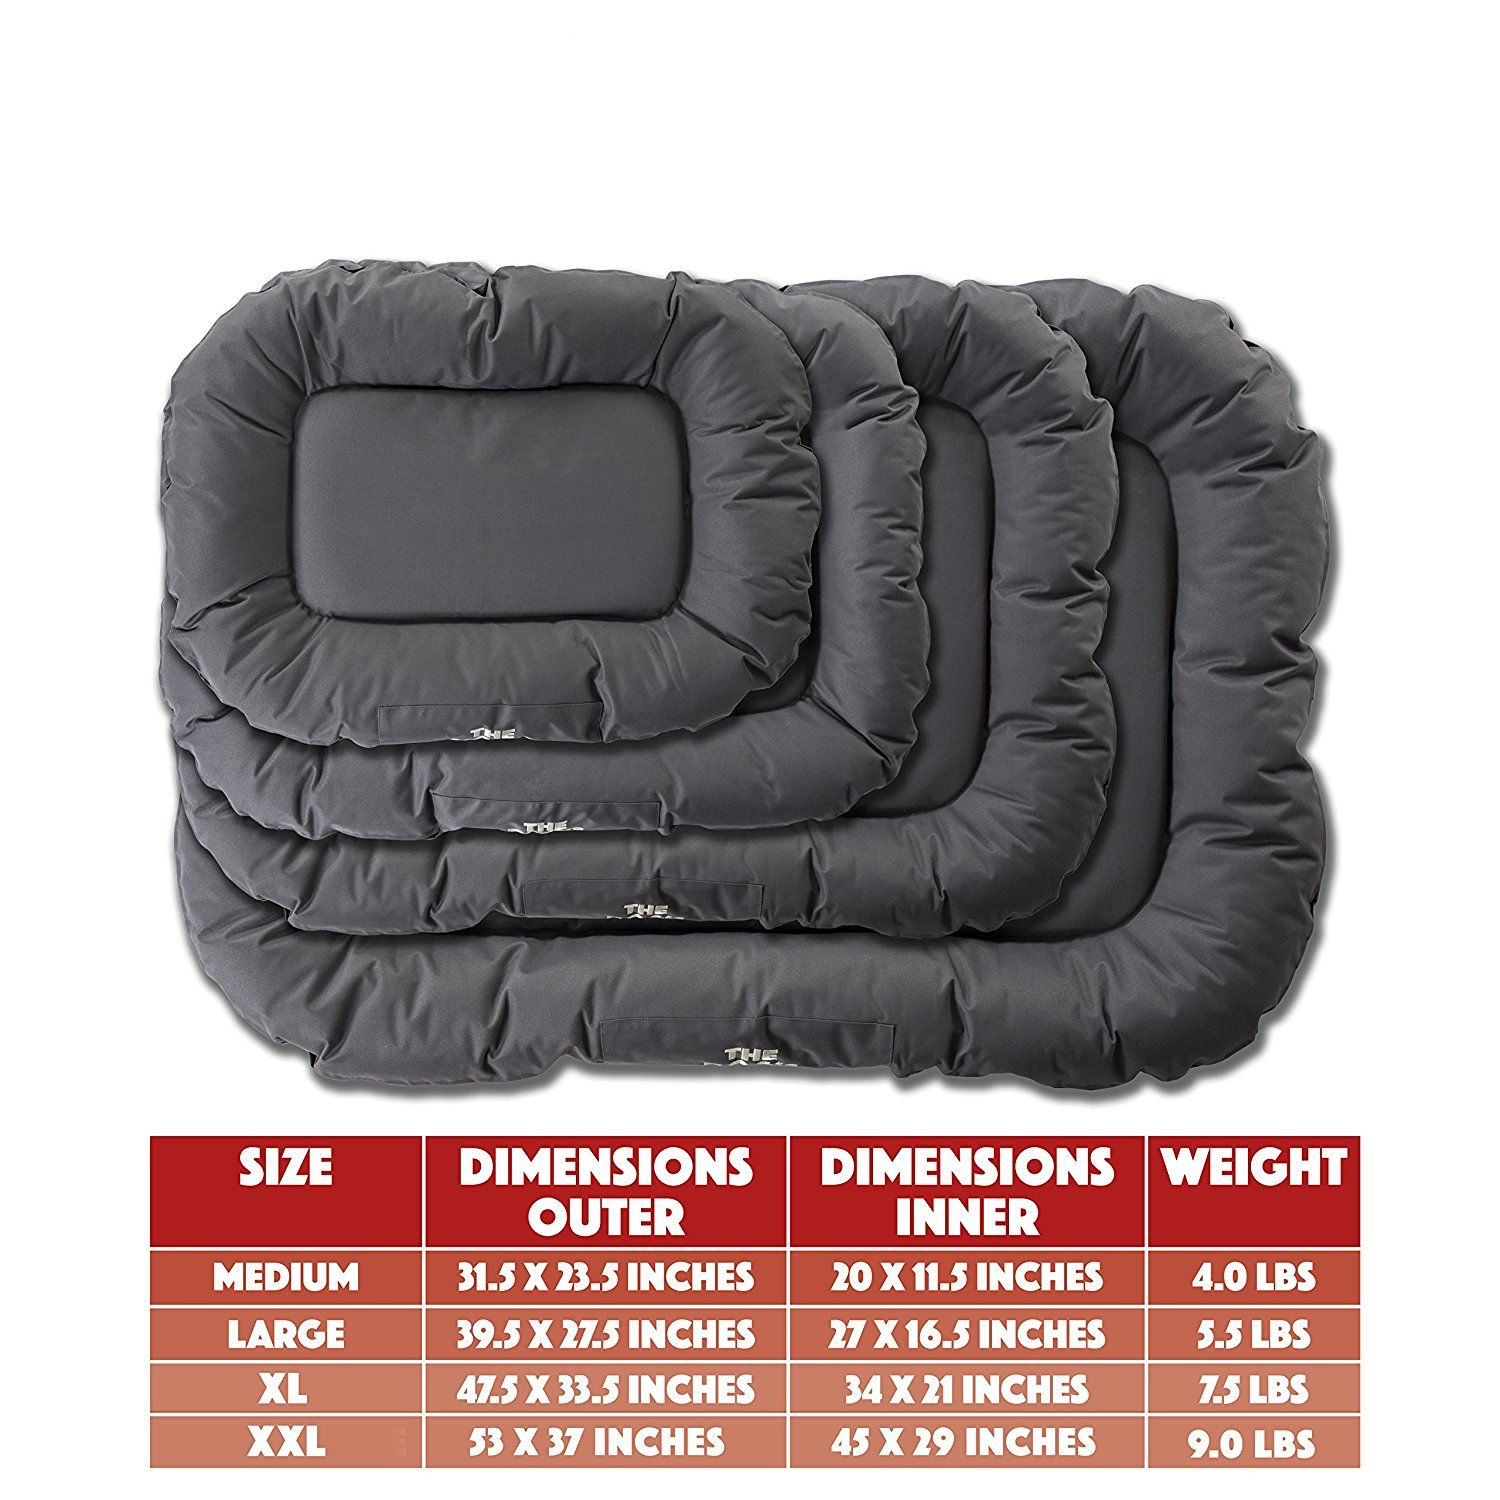 The Dog S Bed Premium Waterproof Dog Beds 5 Sizes 7 Colors